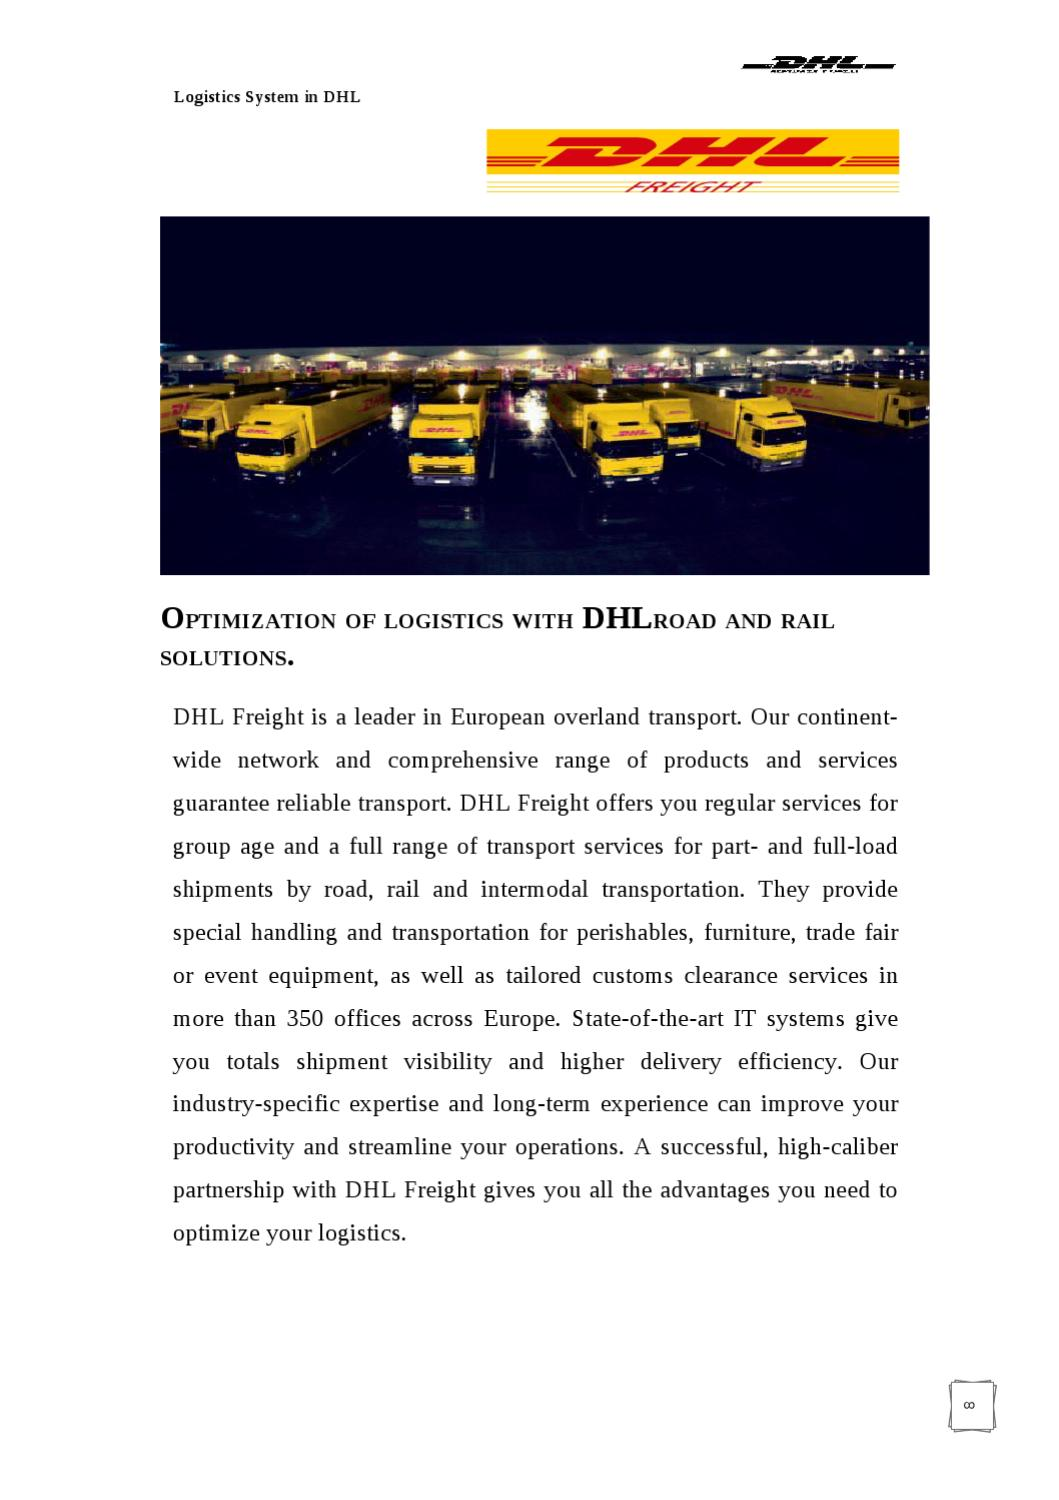 PROJECT REPORT ON LOGISTCS SYSTEM IN DHL by Sanjay Gupta - issuu